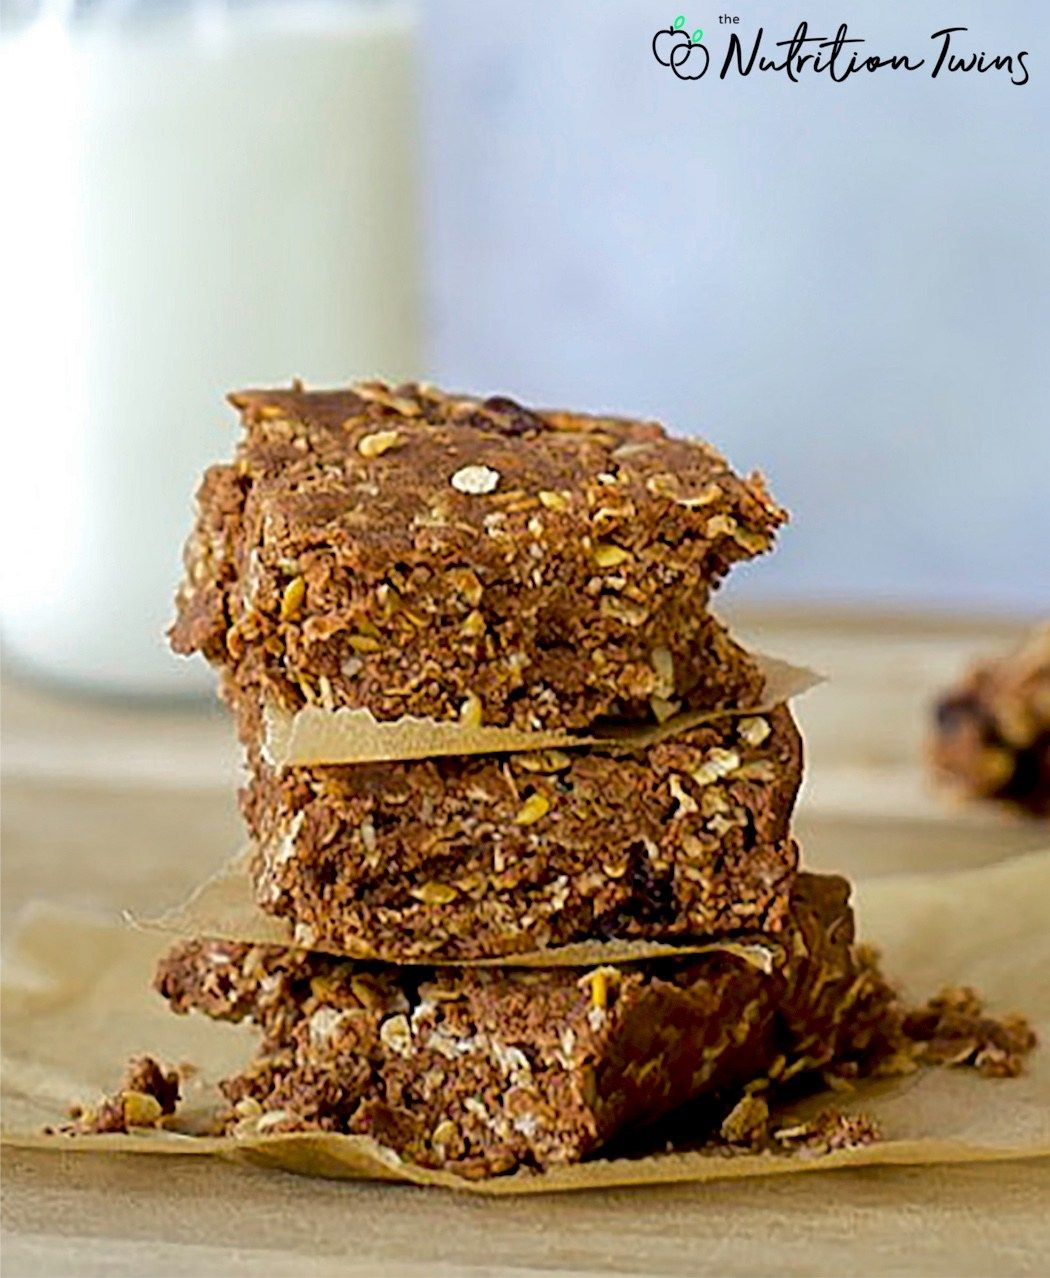 No Bake Chocolate Protein Bars Nutrition Twins Recipe Chocolate Protein Bars Healthy Protein Bars Protein Bars Homemade